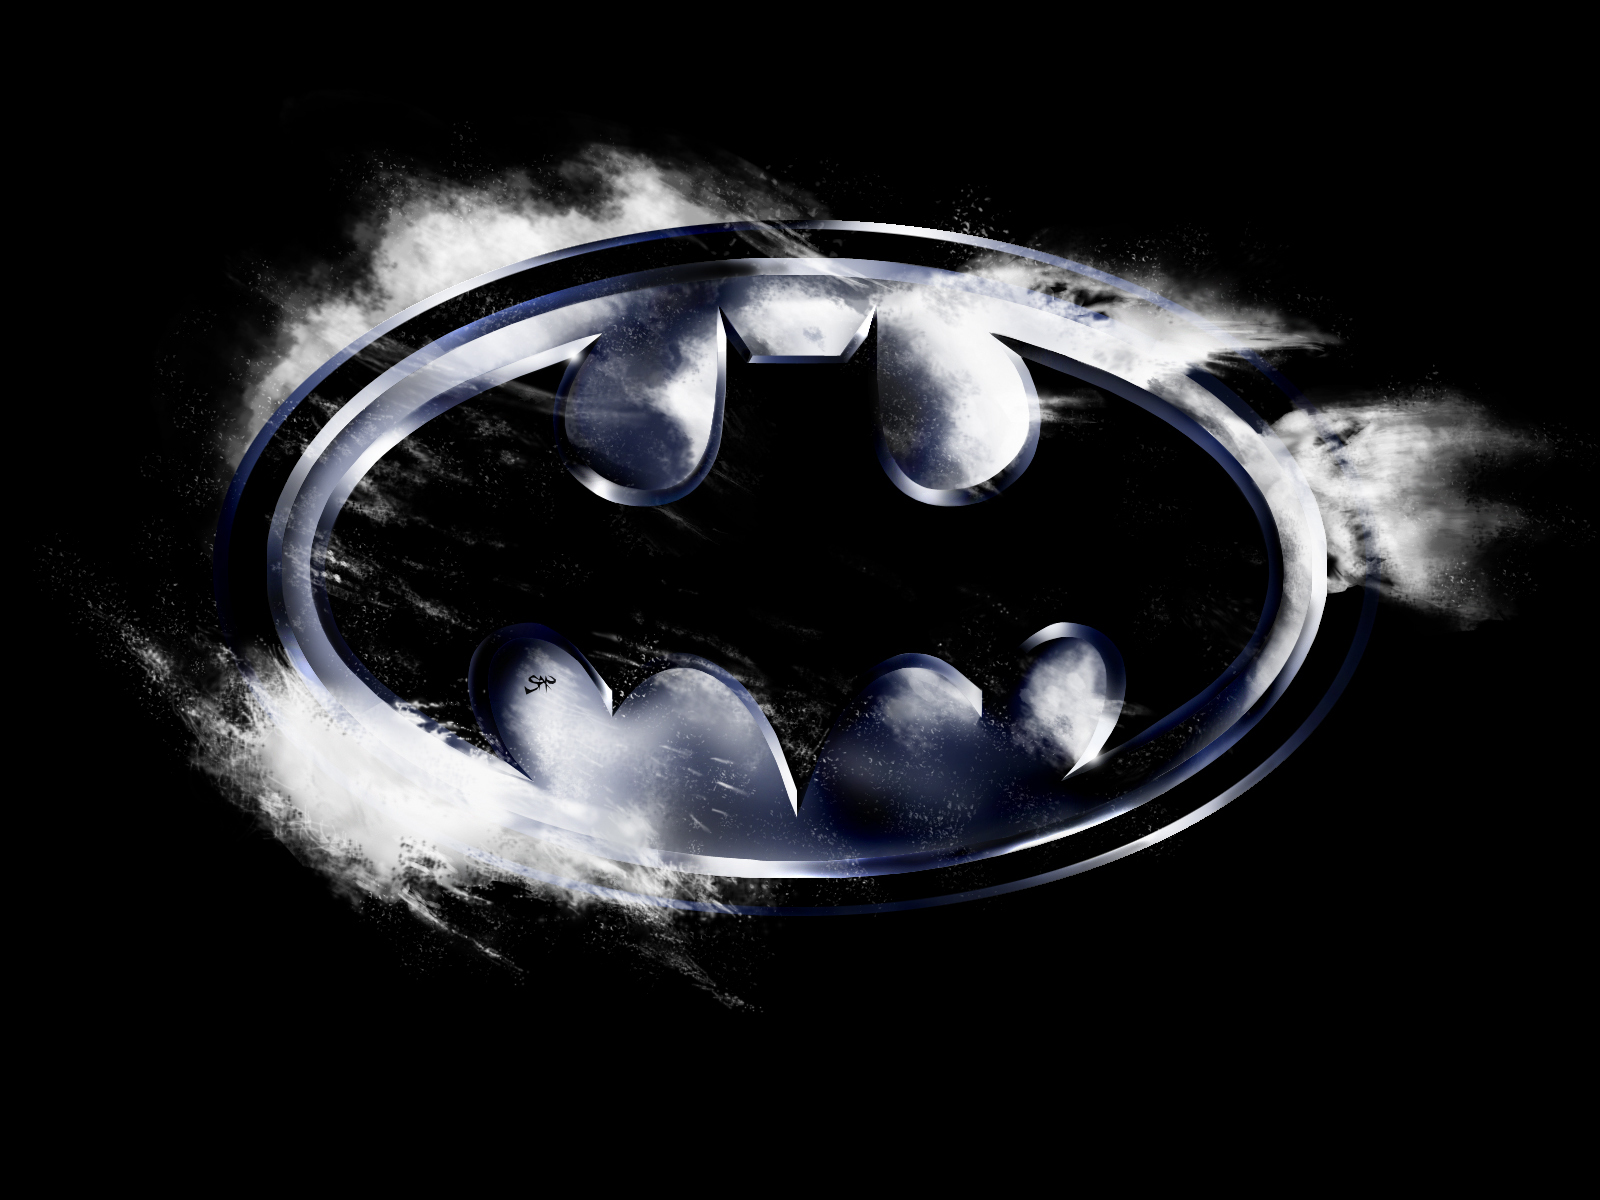 Batman Returns Images Batman Returns Logo Wallpaper Hd: batman symbol